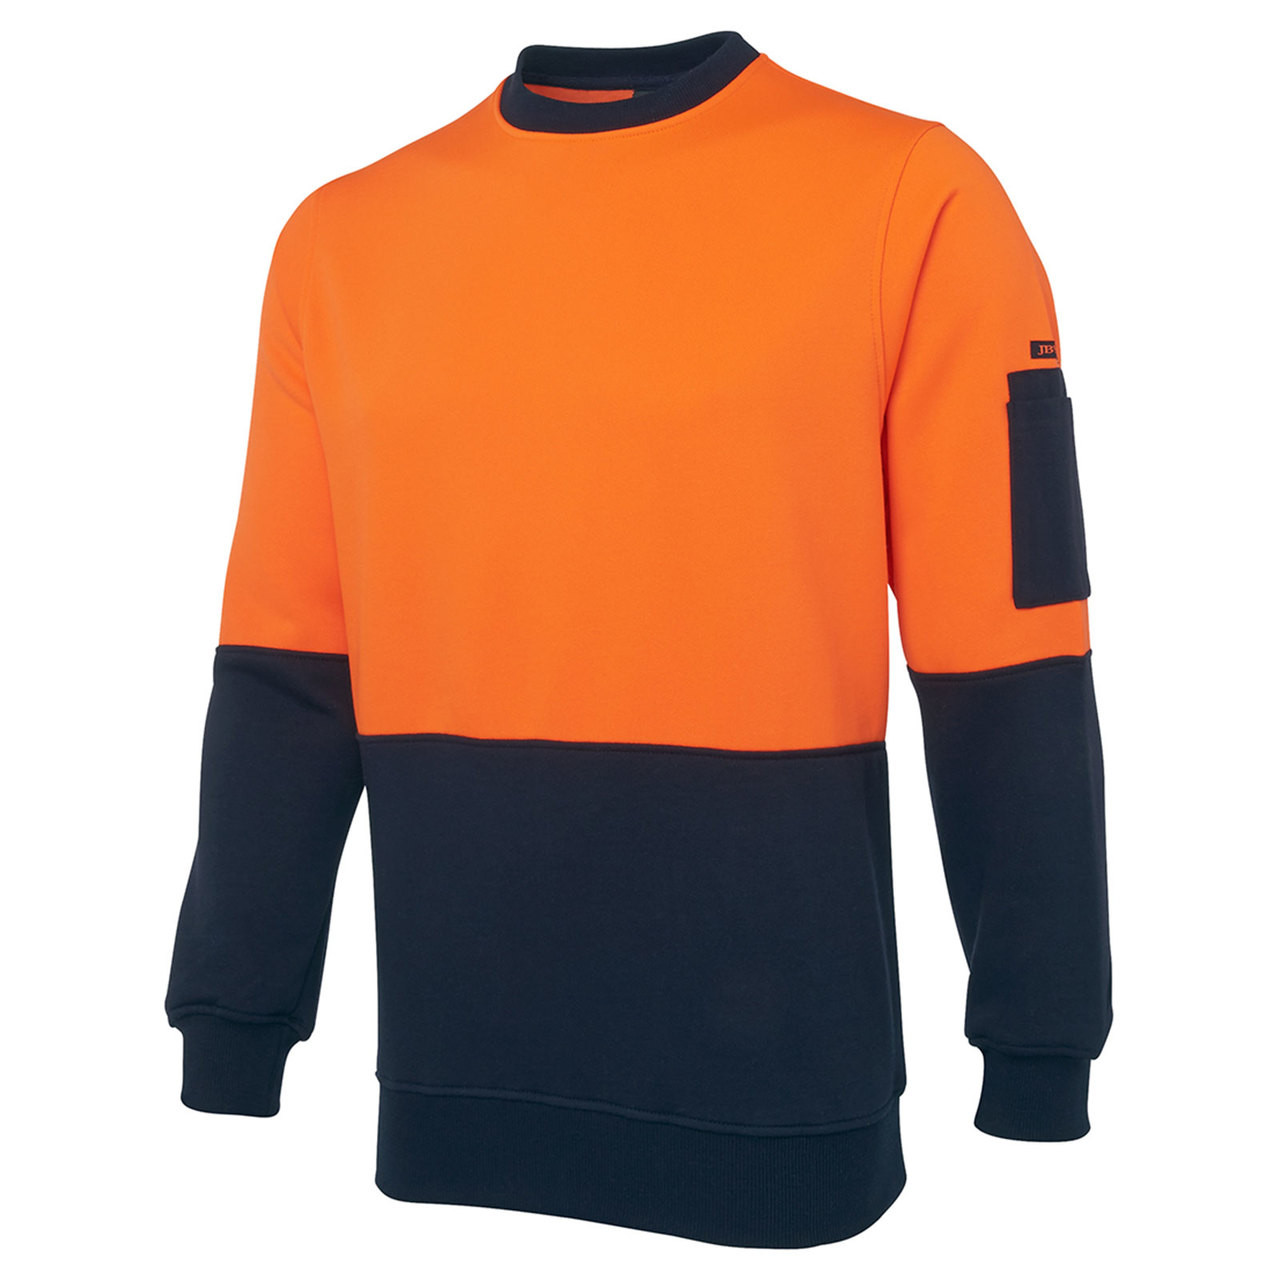 Safety Hi Vis Fleecy Crew Neck Sweater Safety Work Wear High